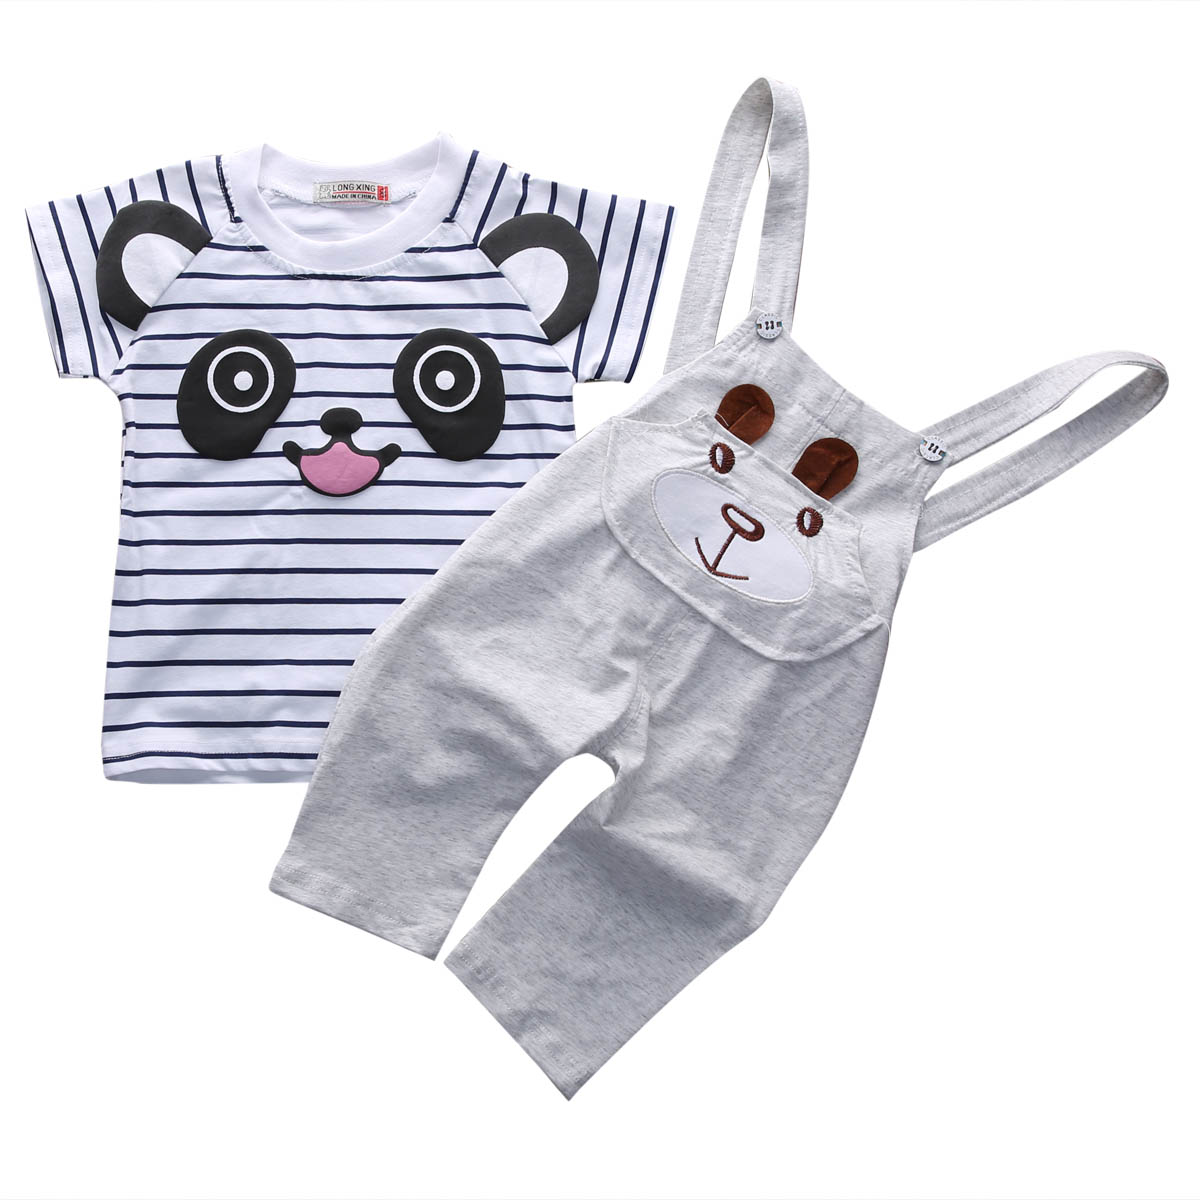 Cute 2PCS Newborn Kids Baby Boy Girls T-shirt Tops+Pants Overalls Outfits Clothes Set Summer Striped Tees Clothing newborn kids baby boy summer clothes set t shirt tops pants outfits boys sets 2pcs 0 3y camouflage